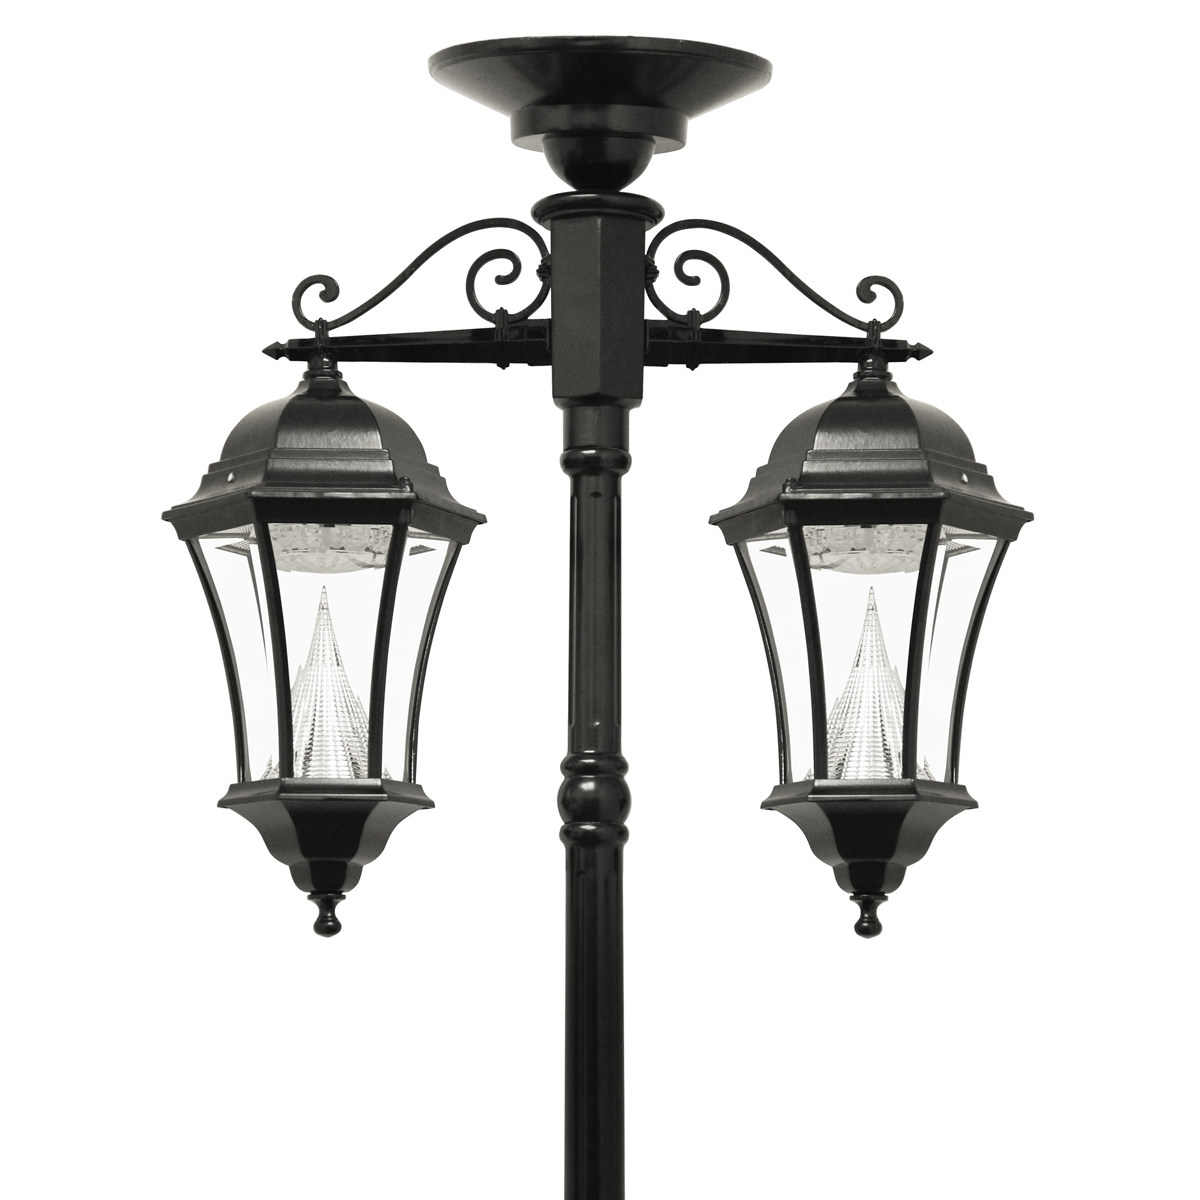 Victorian Solar Lamp Series – Double Downward Hanging Lamp Post Gs Regarding Outdoor Hanging Lights At Ebay (View 14 of 15)